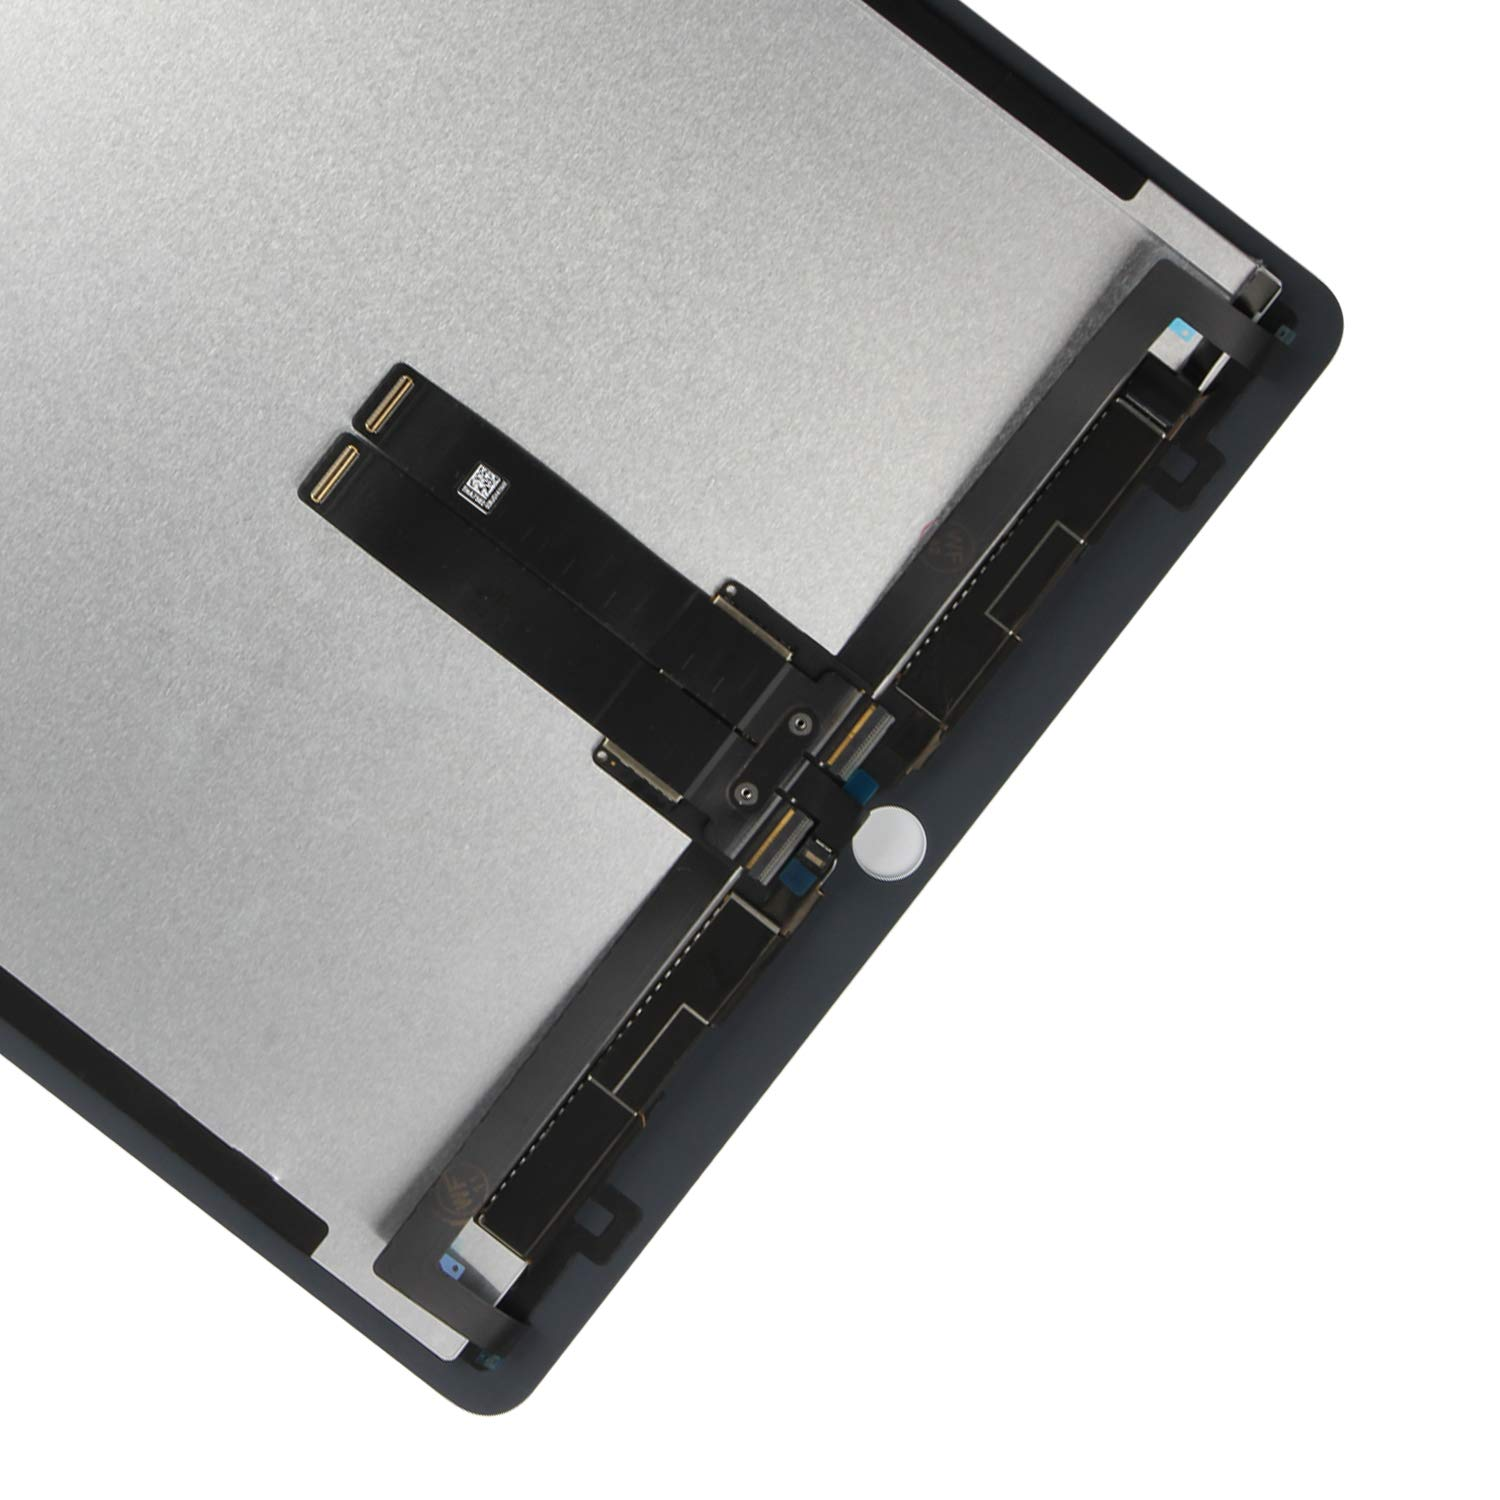 for iPad Pro 12.9 A1670 A1671 A1821 Screen Replacement LCD Display Touch Screen Digitizer + IC Connector PCB Flex Cable Assembly (2017) (White) by SRJTEK (Image #5)